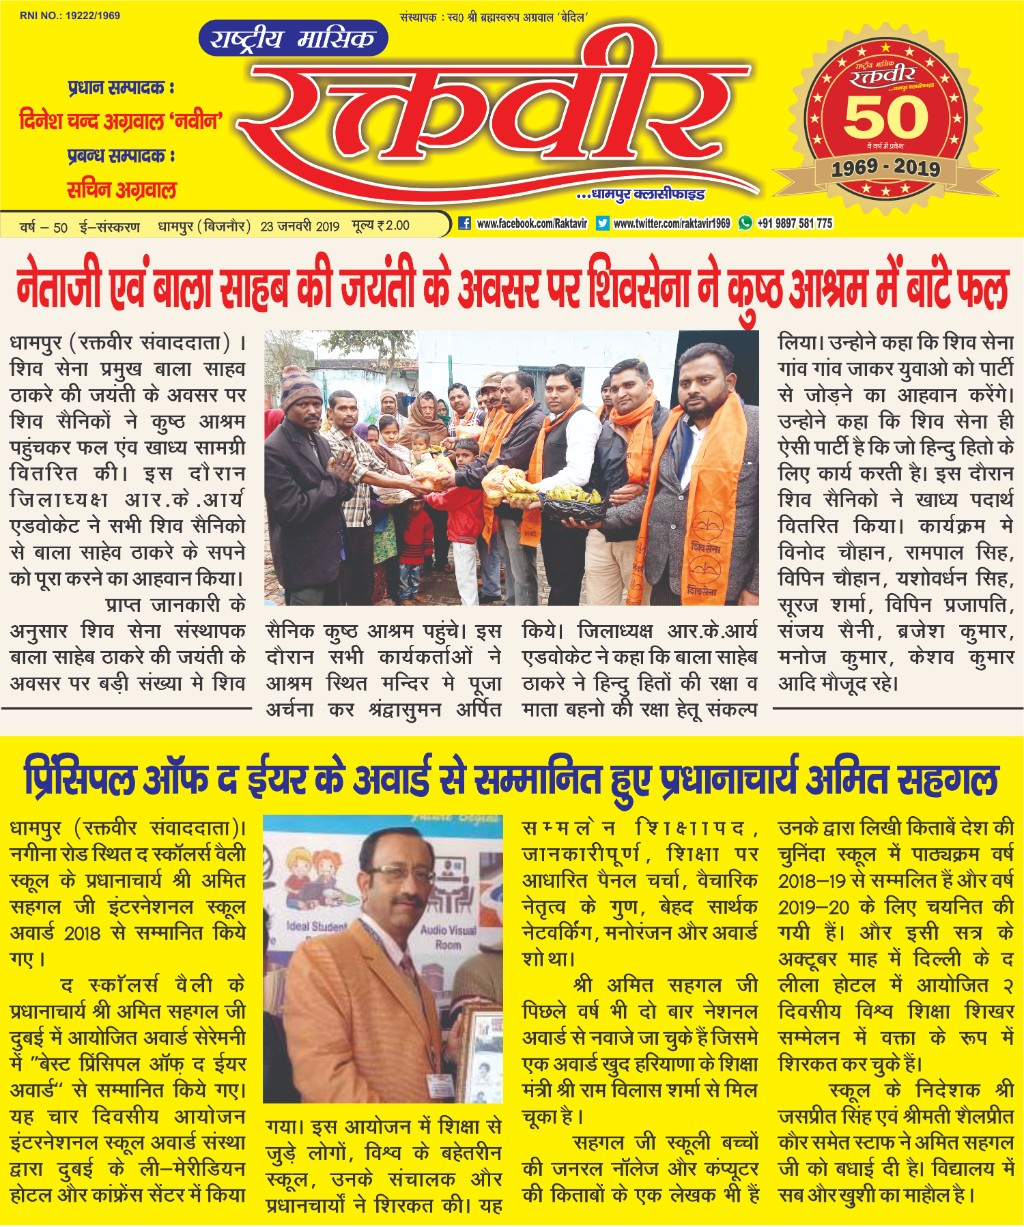 International Principal Award in Raktavir e-edition